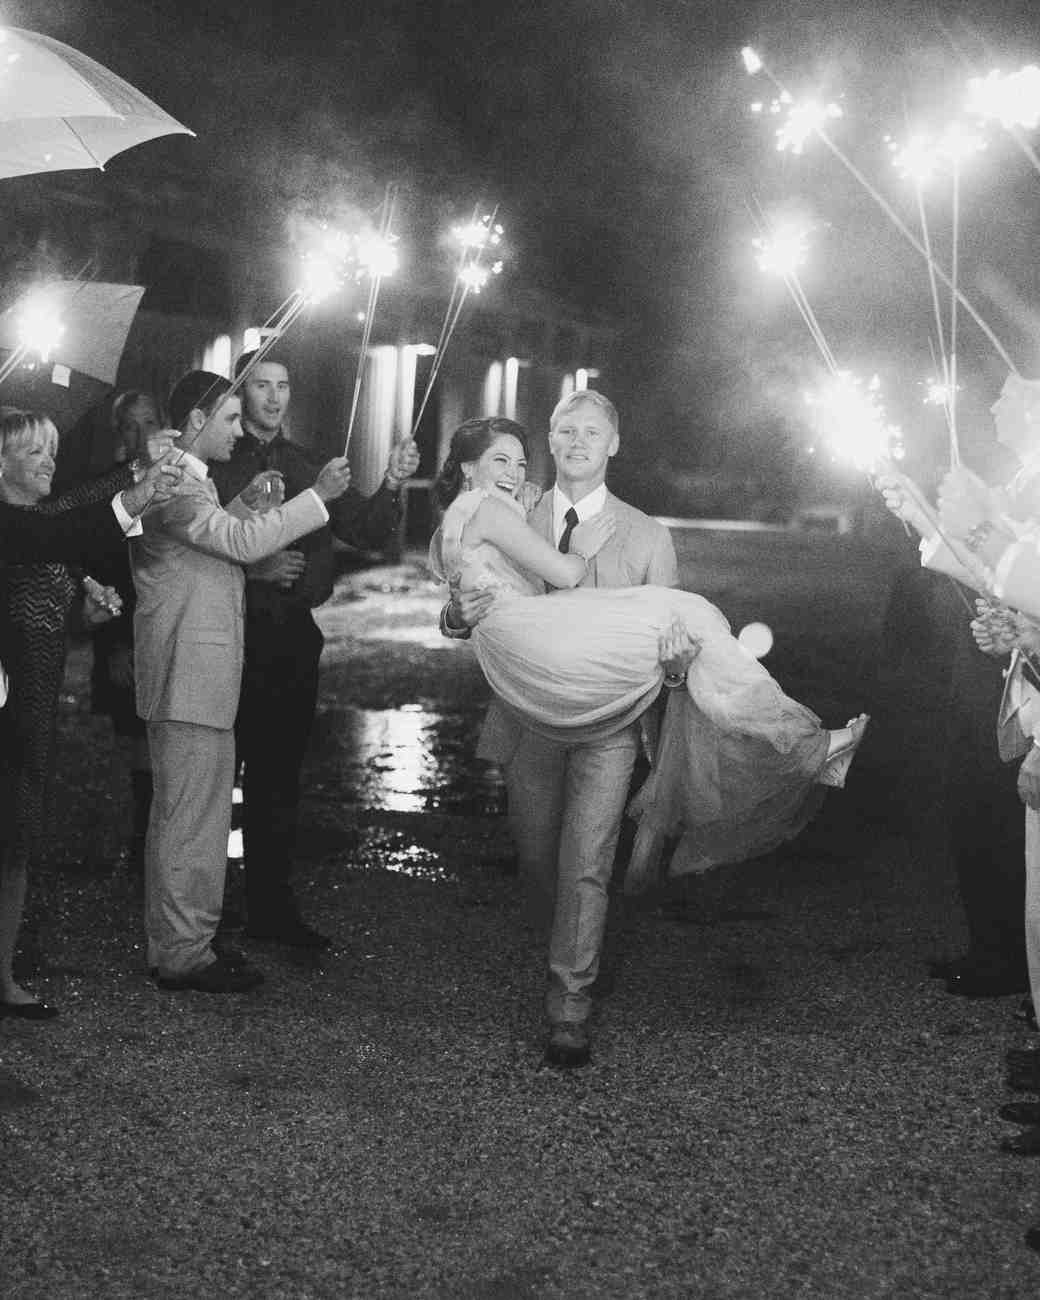 sara-matt-wedding-sparklers-42582-s111990-0715.jpg